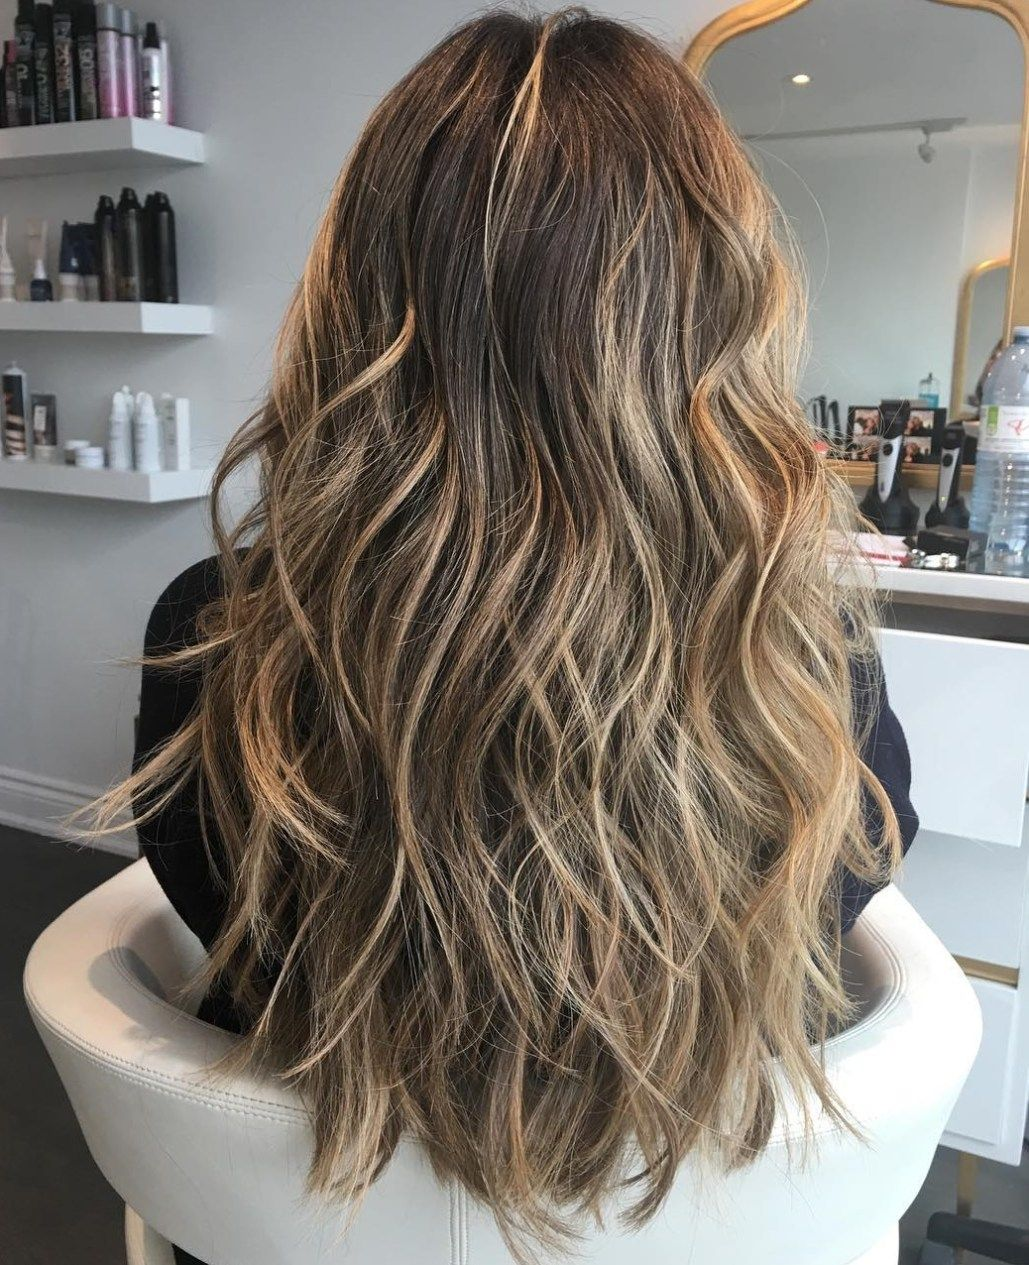 50 new long hairstyles with layers for 2020 i 2020